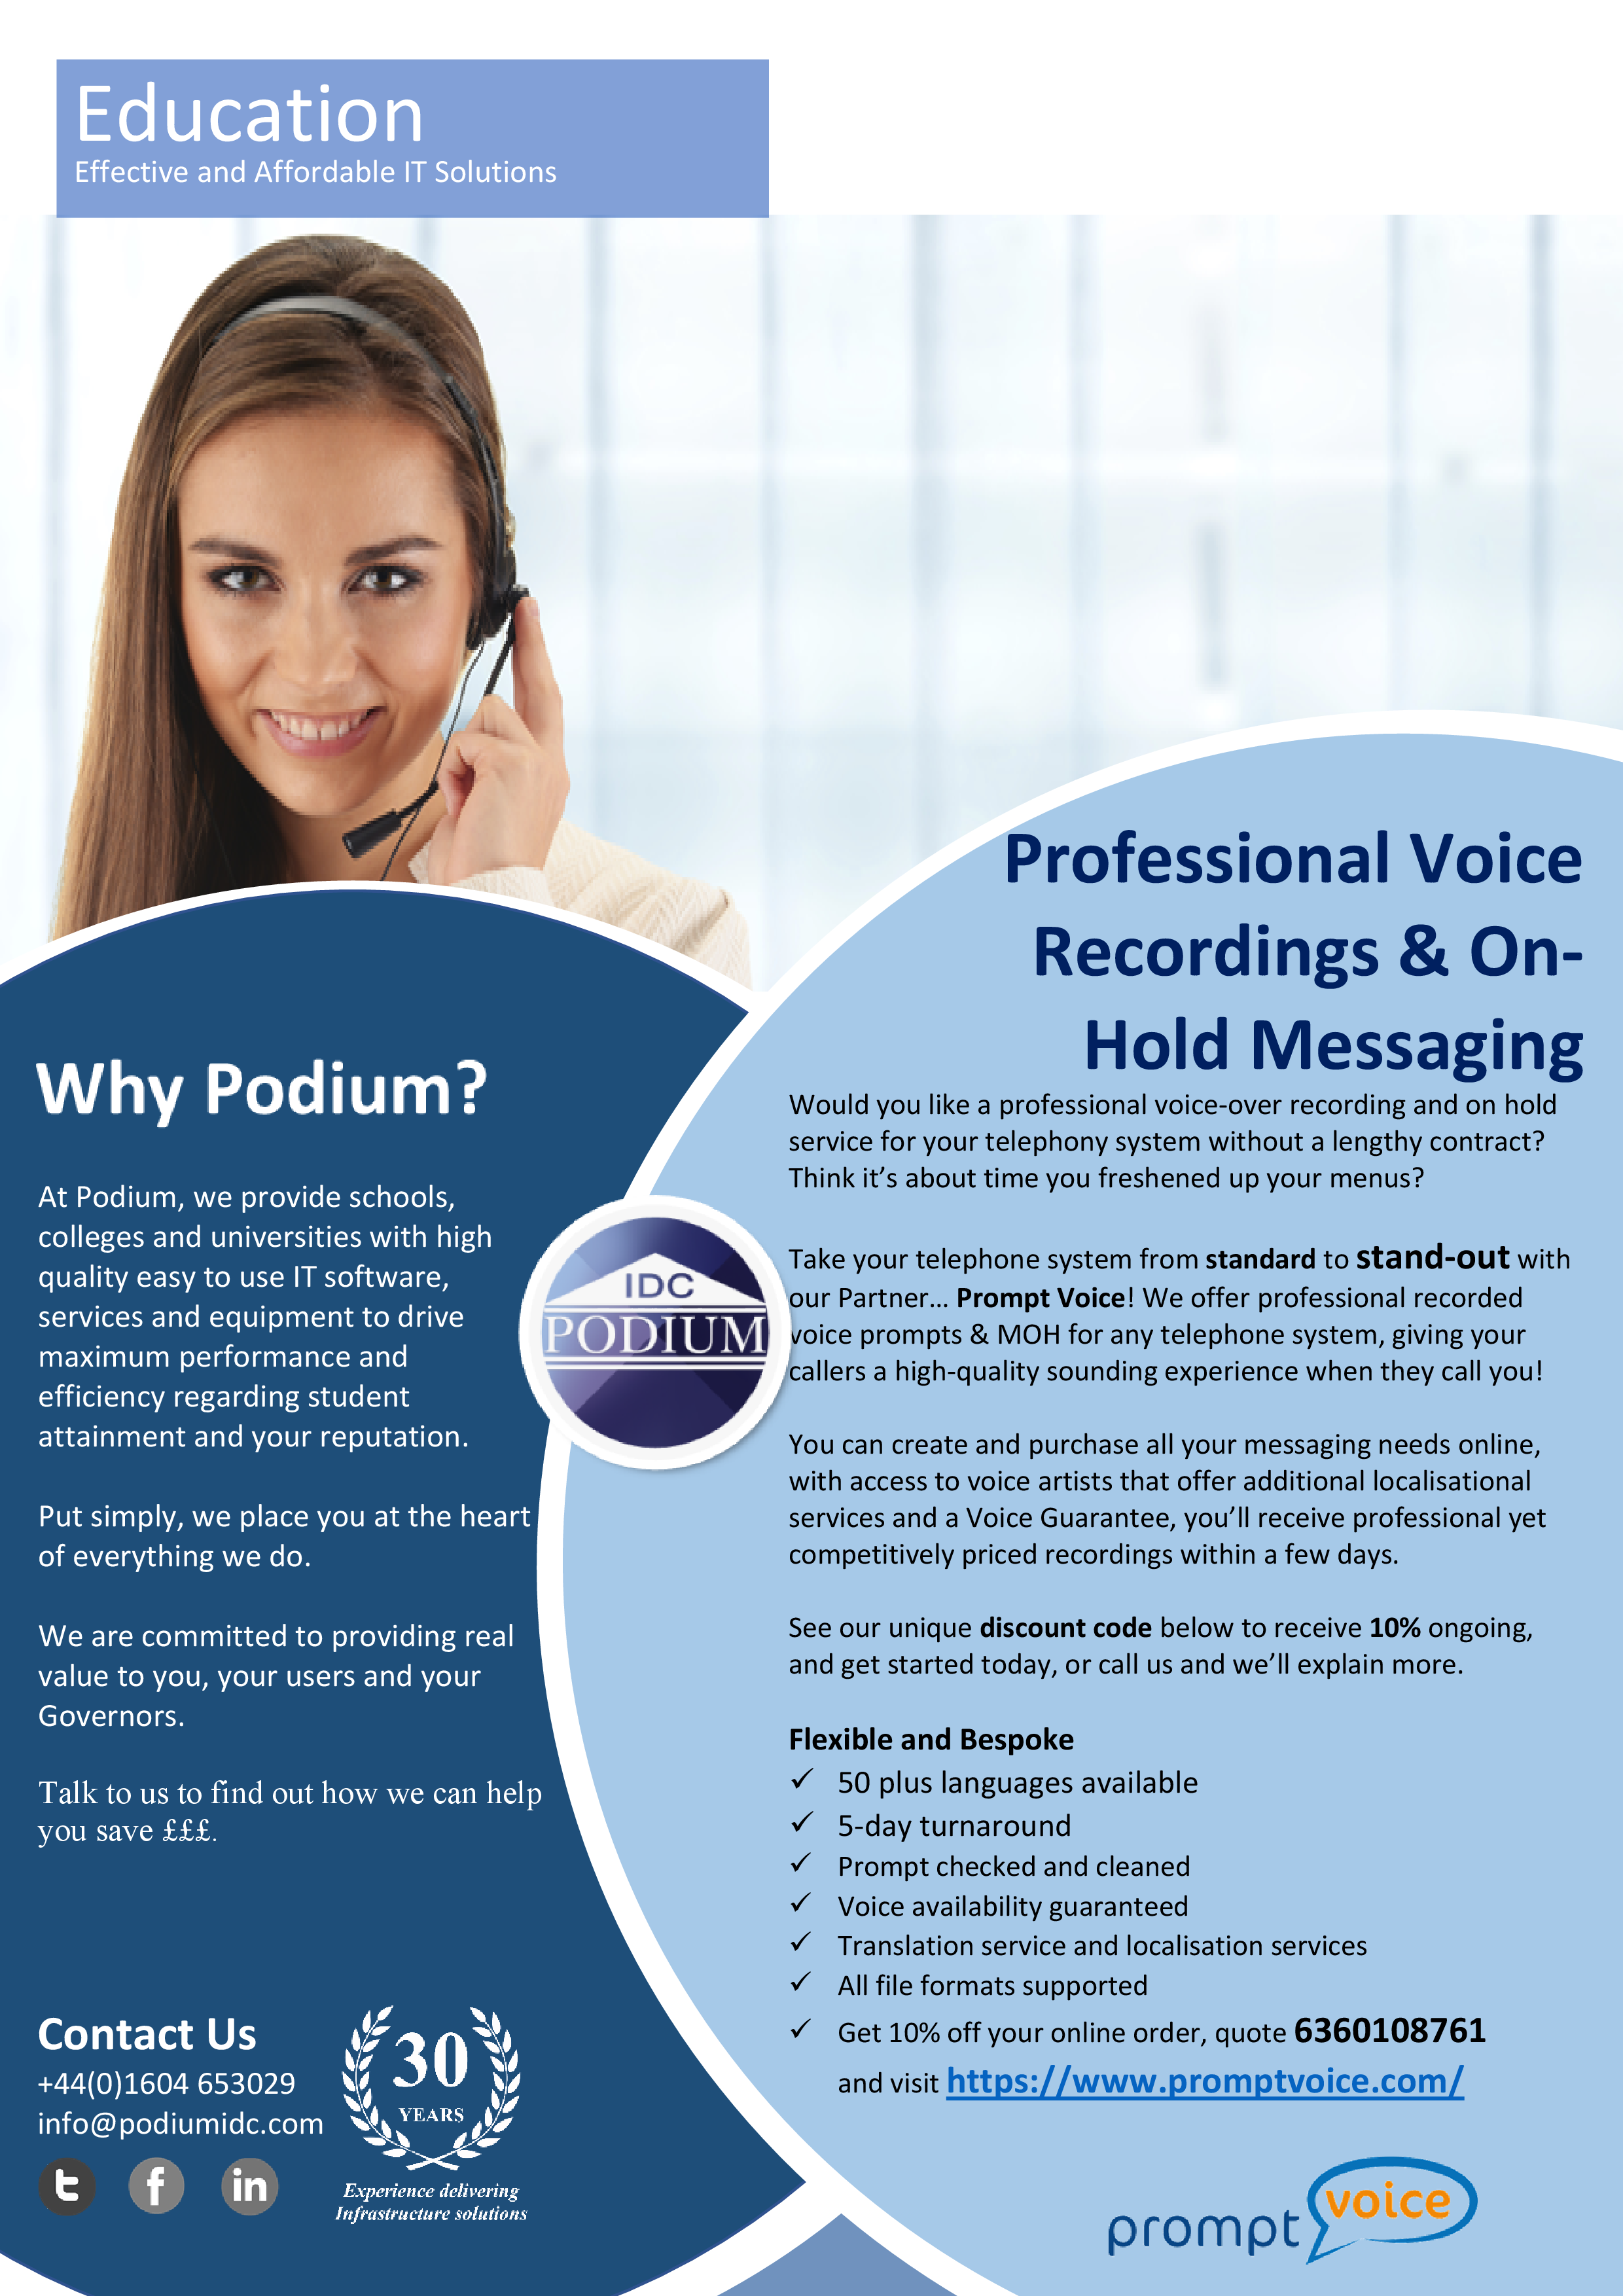 Take your telephone system from standard to stand-out with our Partner… Prompt Voice! We offer professional recorded voice prompts & MOH for any telephone system, giving your callers a high-quality sounding experience when they call you!